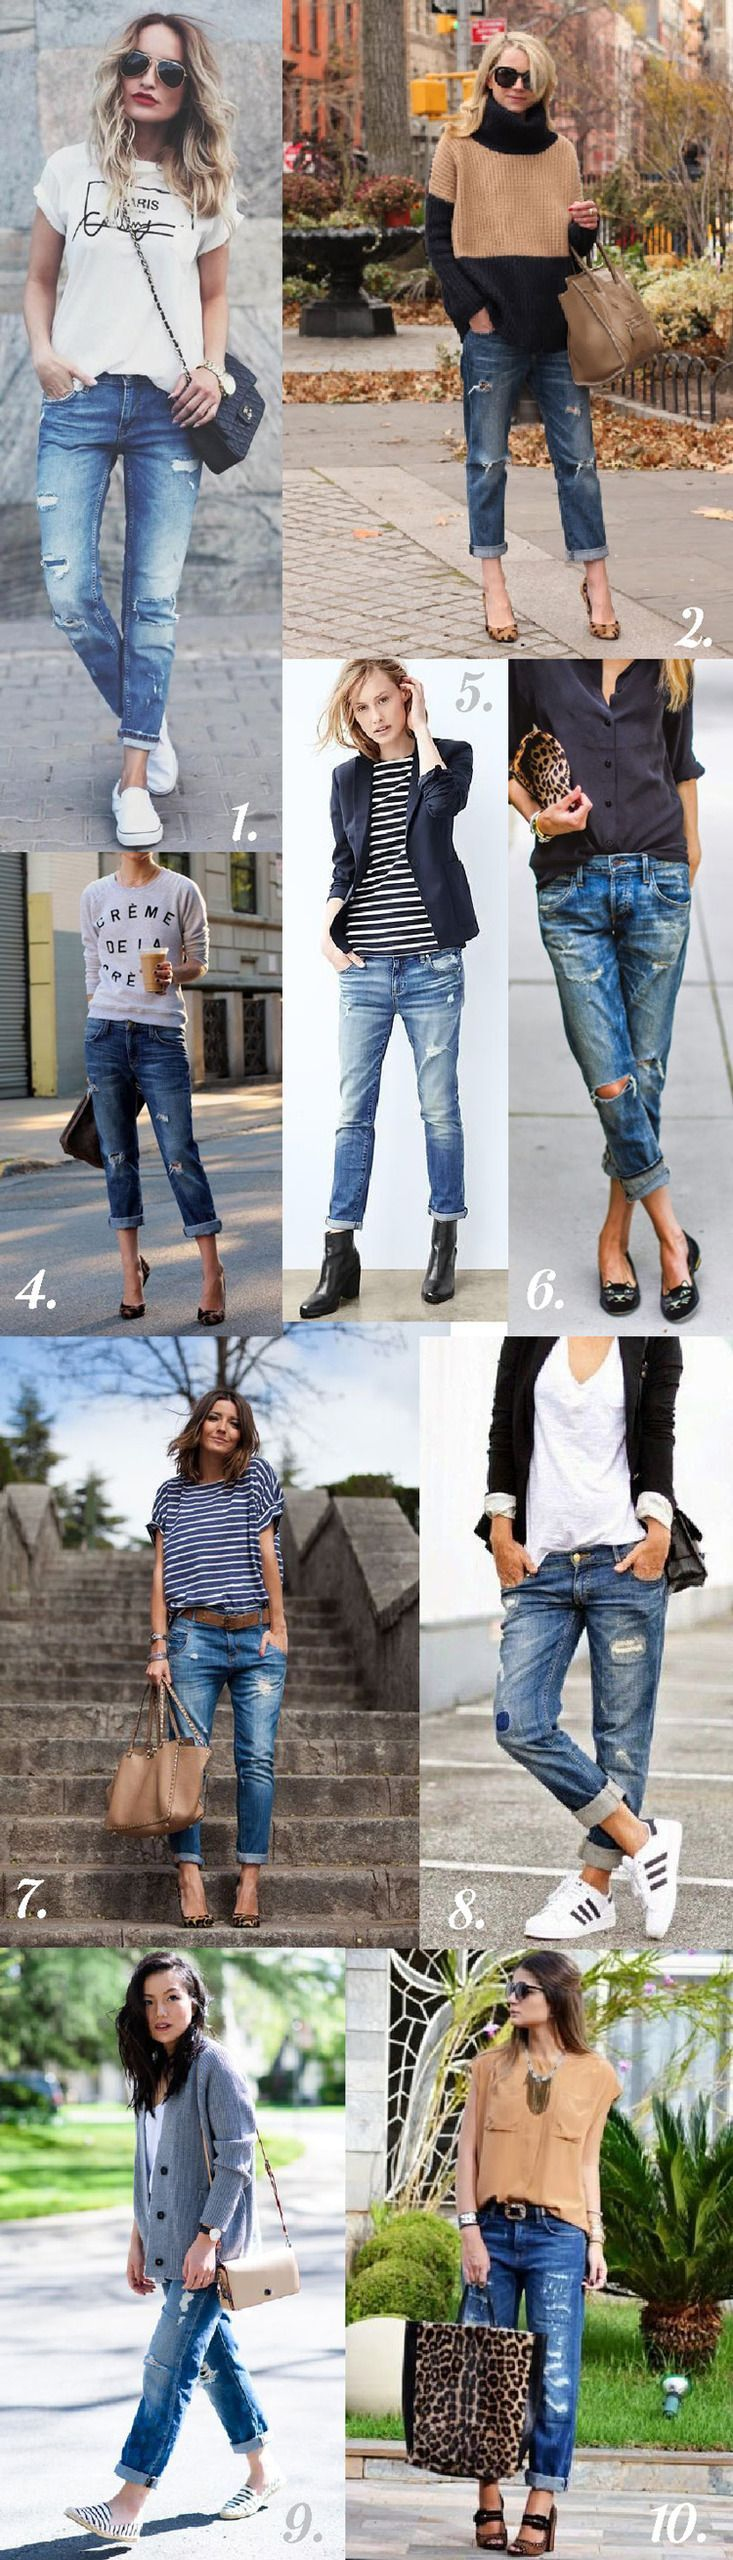 Morgan Boyfriend Jeans // Styling Inspiration